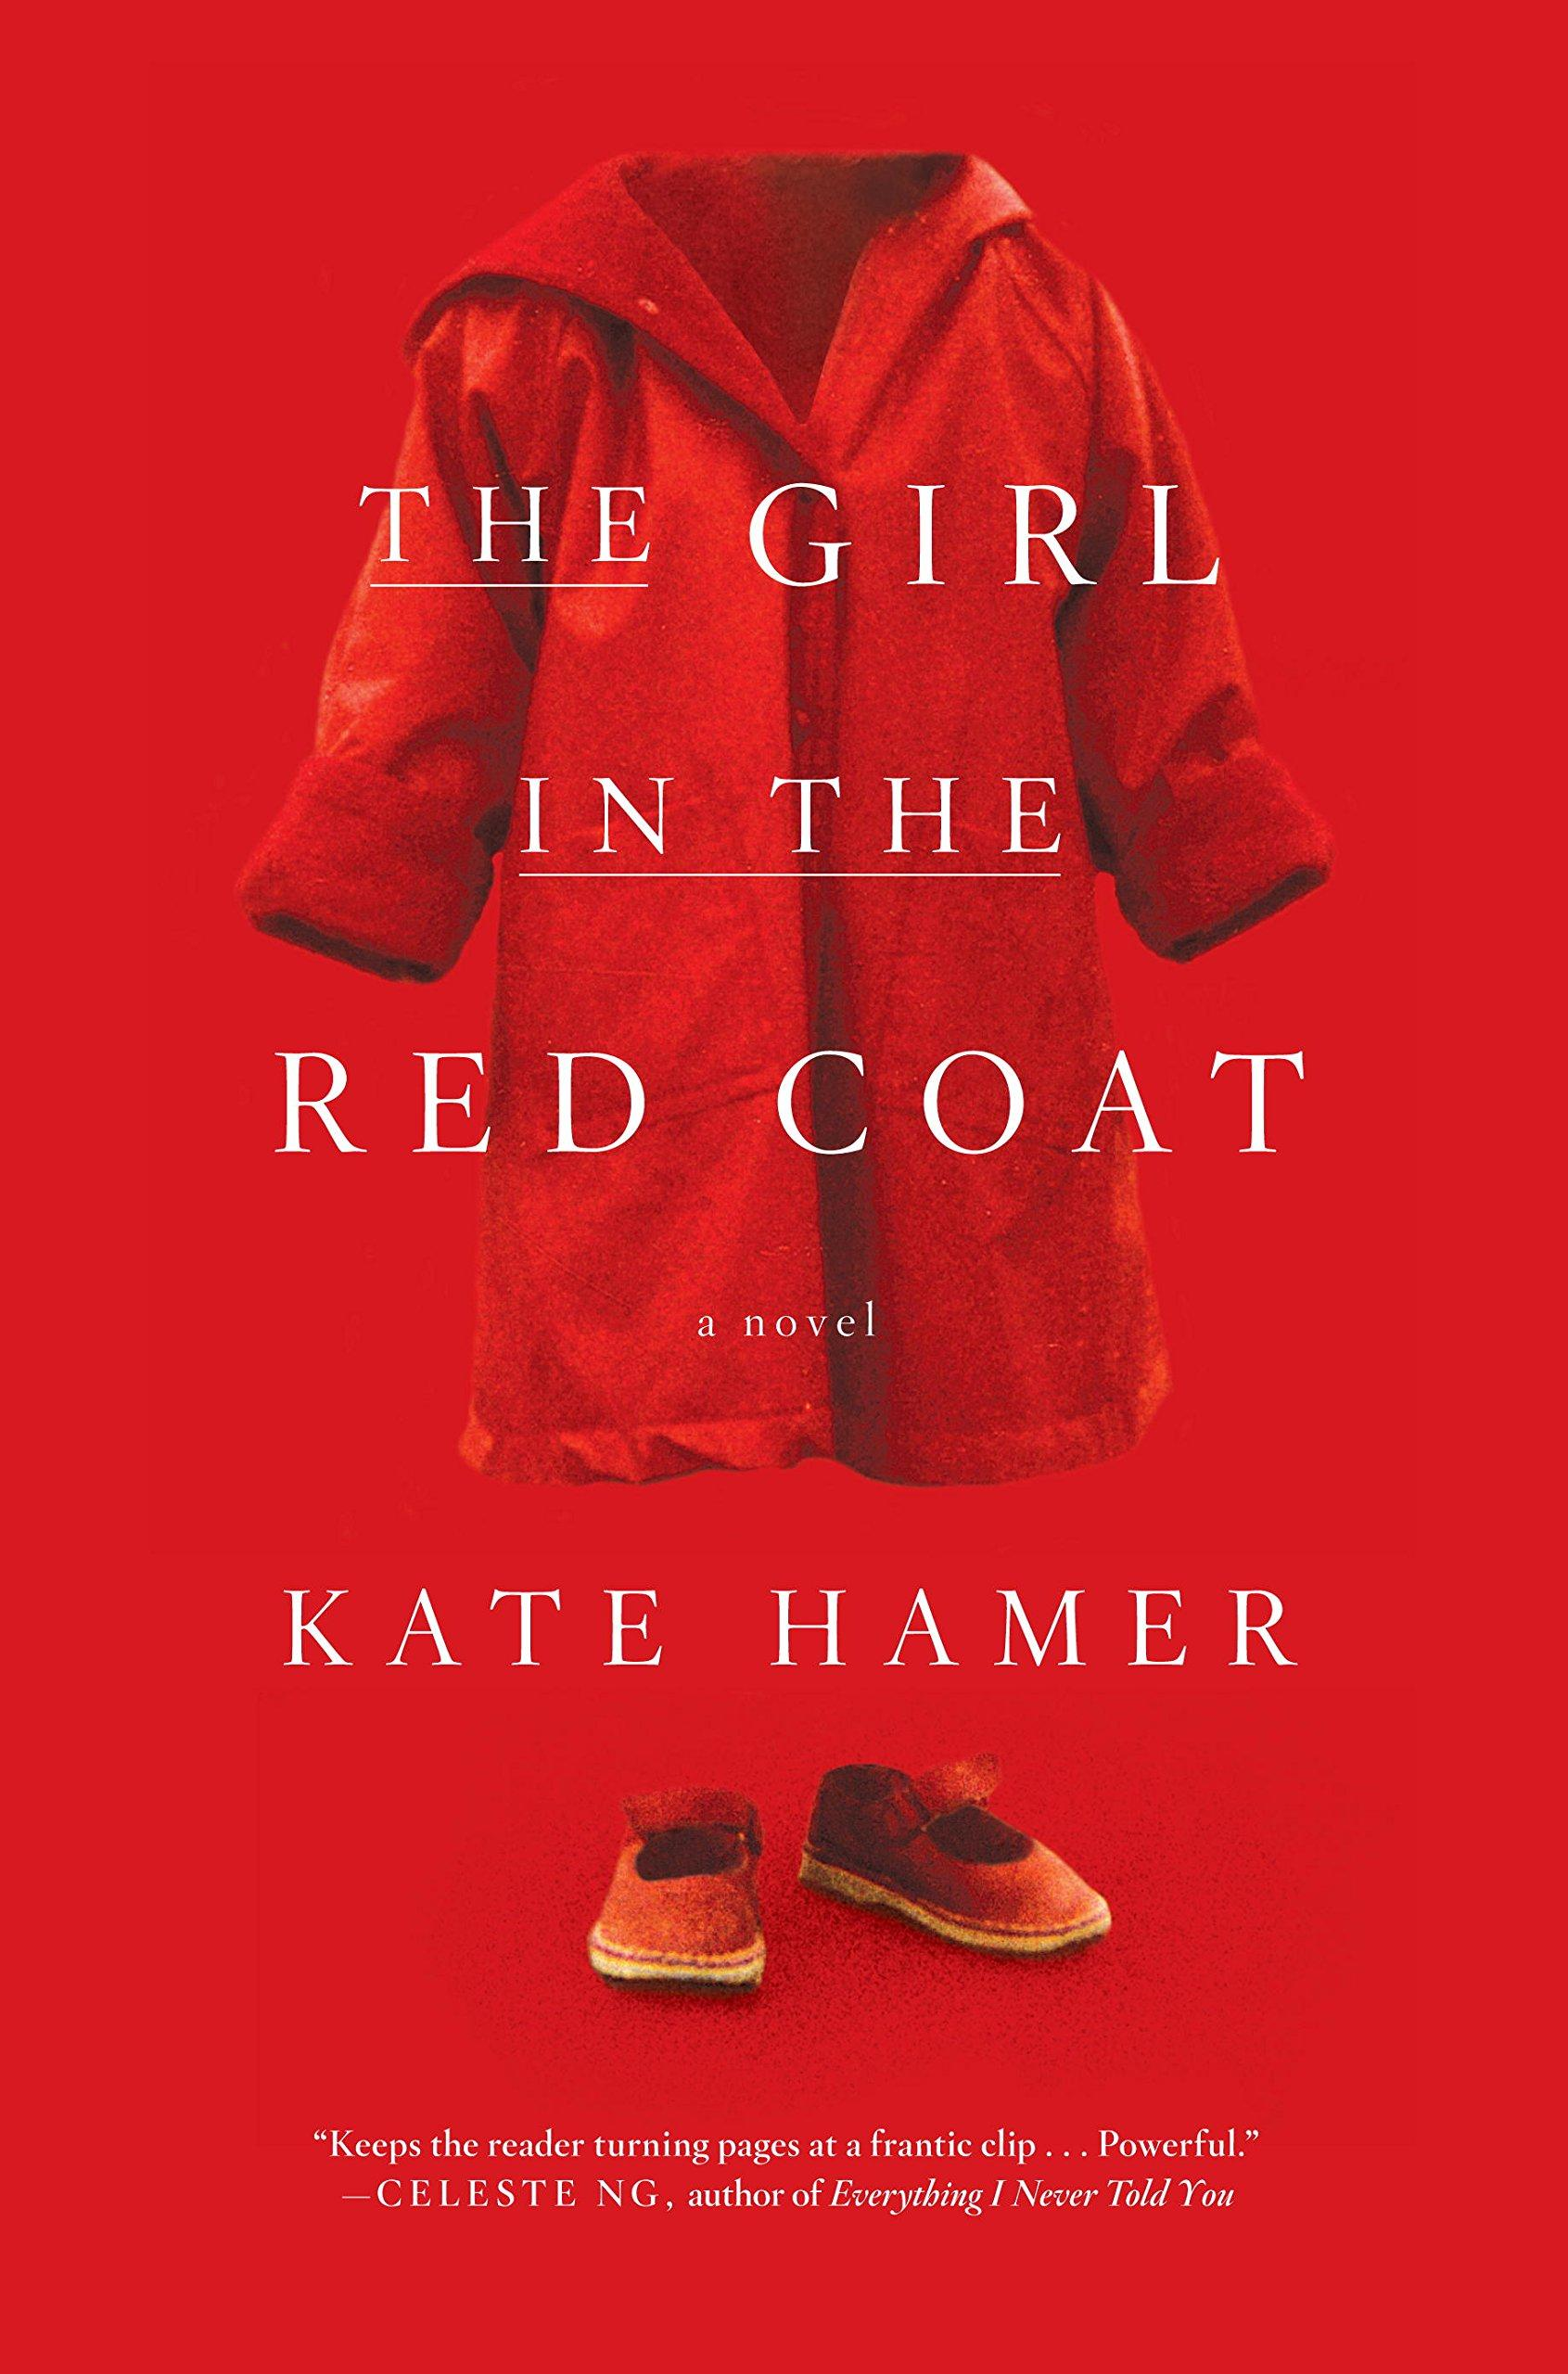 The Girl In The Red Coat By Kate Hamer | WAMC